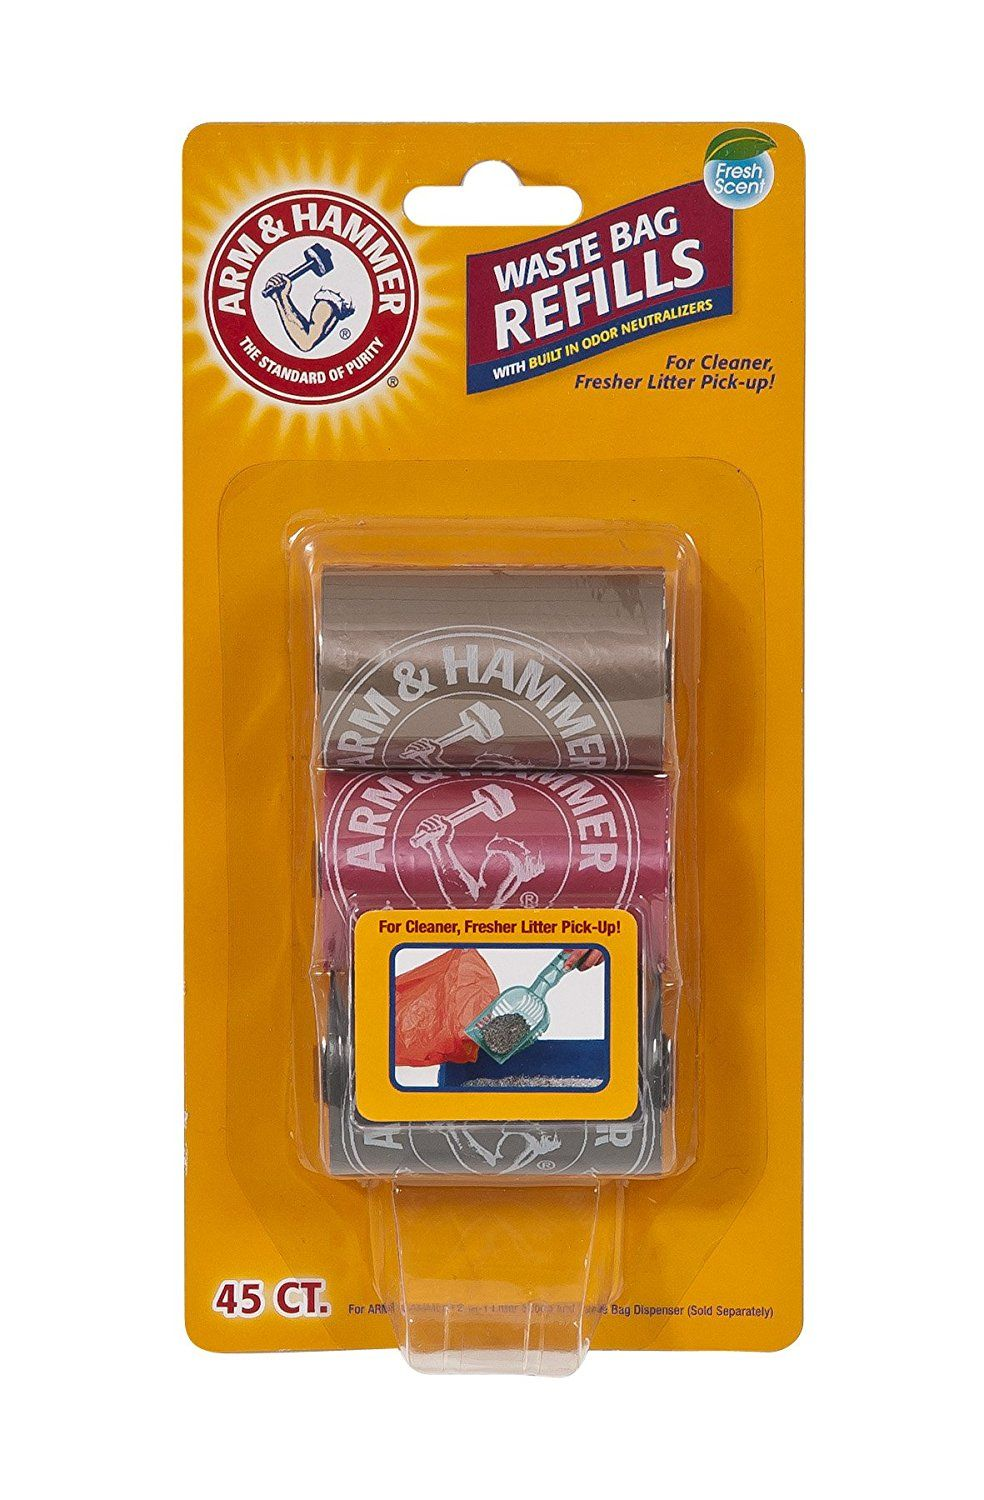 ARM and HAMMER LITTER SCOOP WASTE BAG 3CT REFILLS >>> Stop